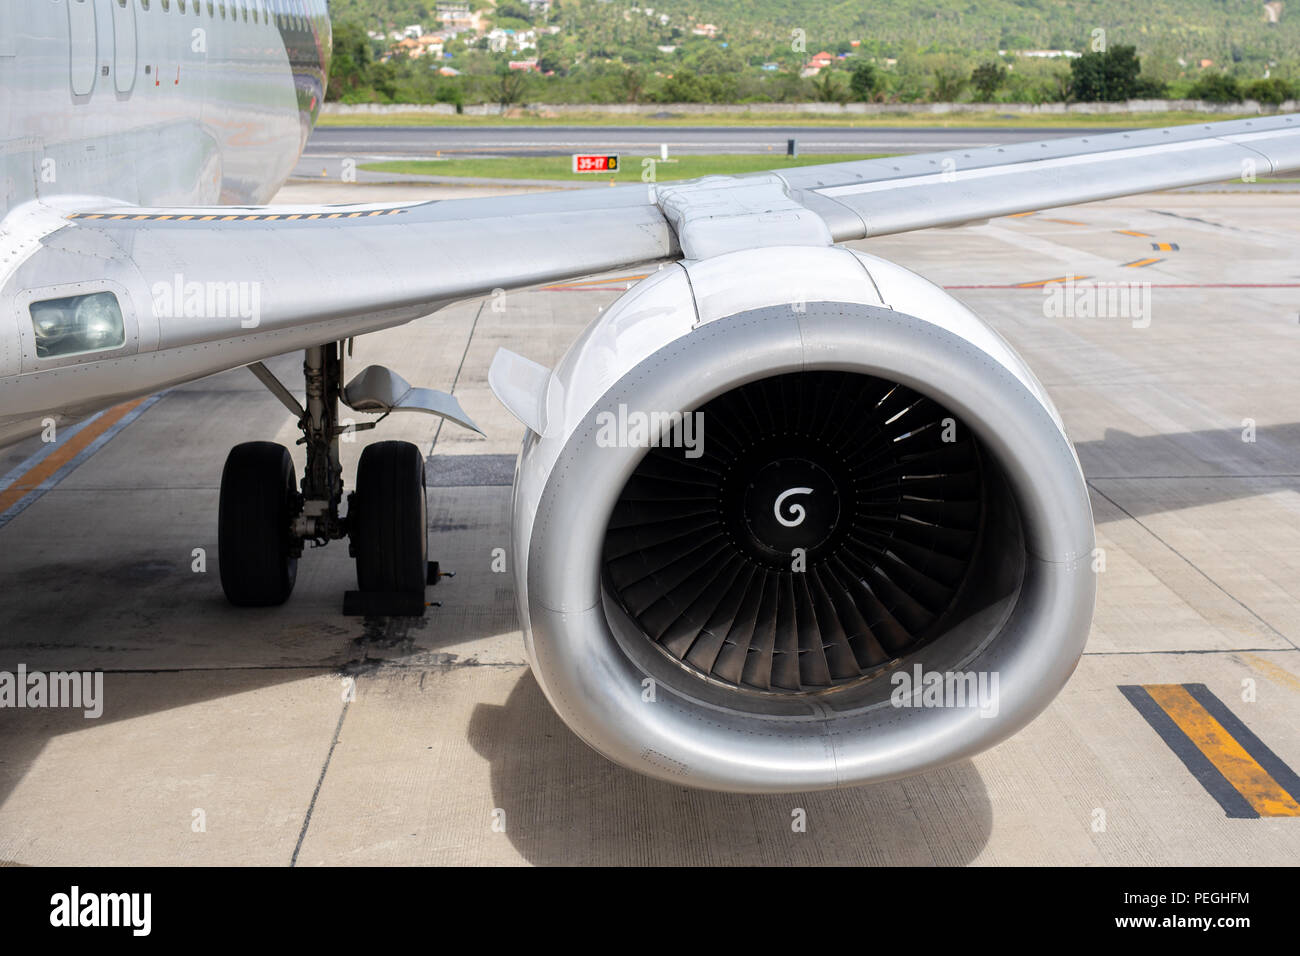 Turbine of 737-400 engine airplane in tropical airport background. - Stock Image